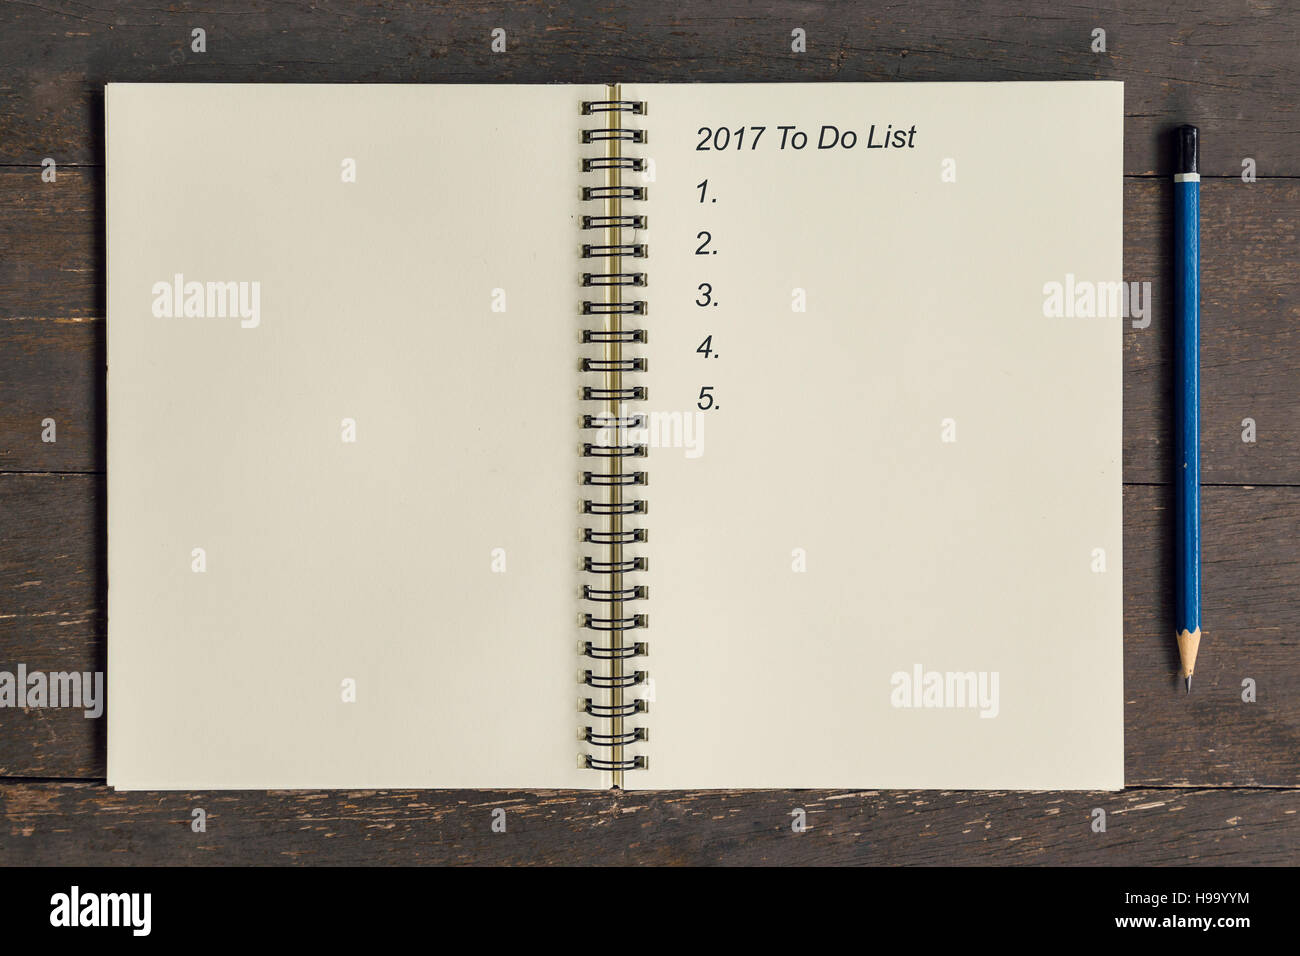 business concept top view notebook writing 2017 to do list stock